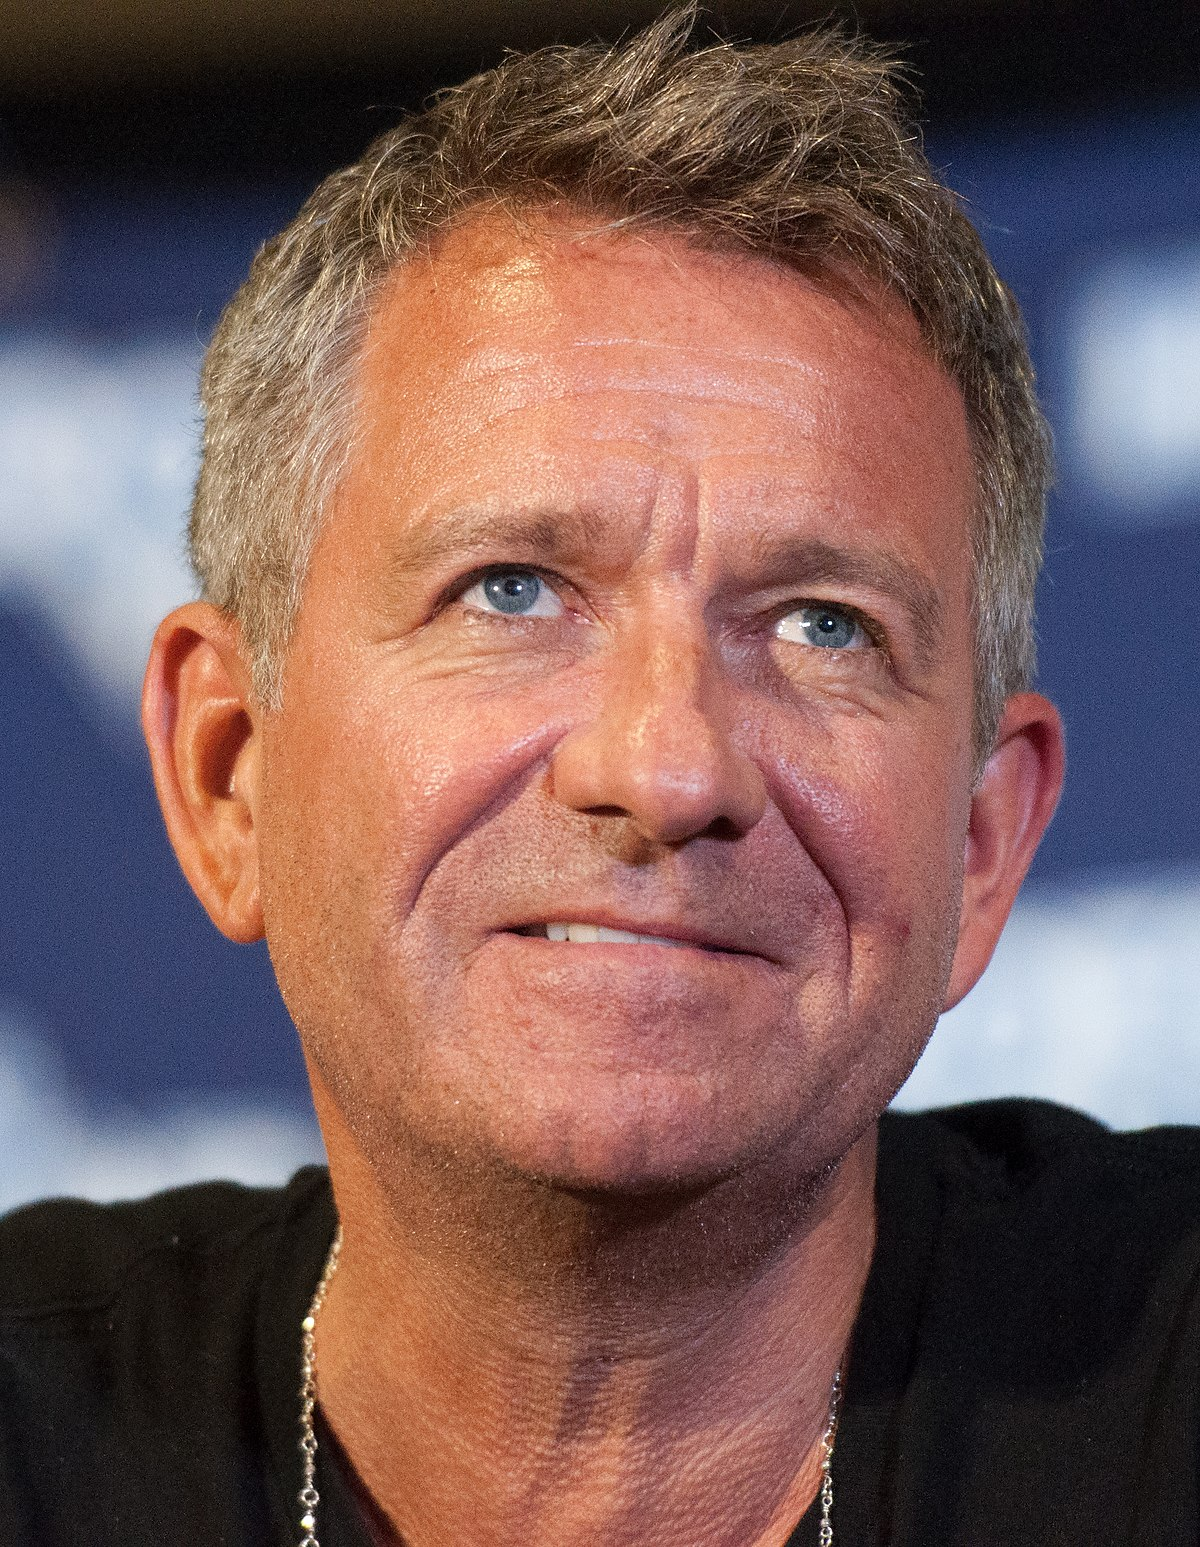 fb0d92de3 Sean Pertwee - Wikipedia